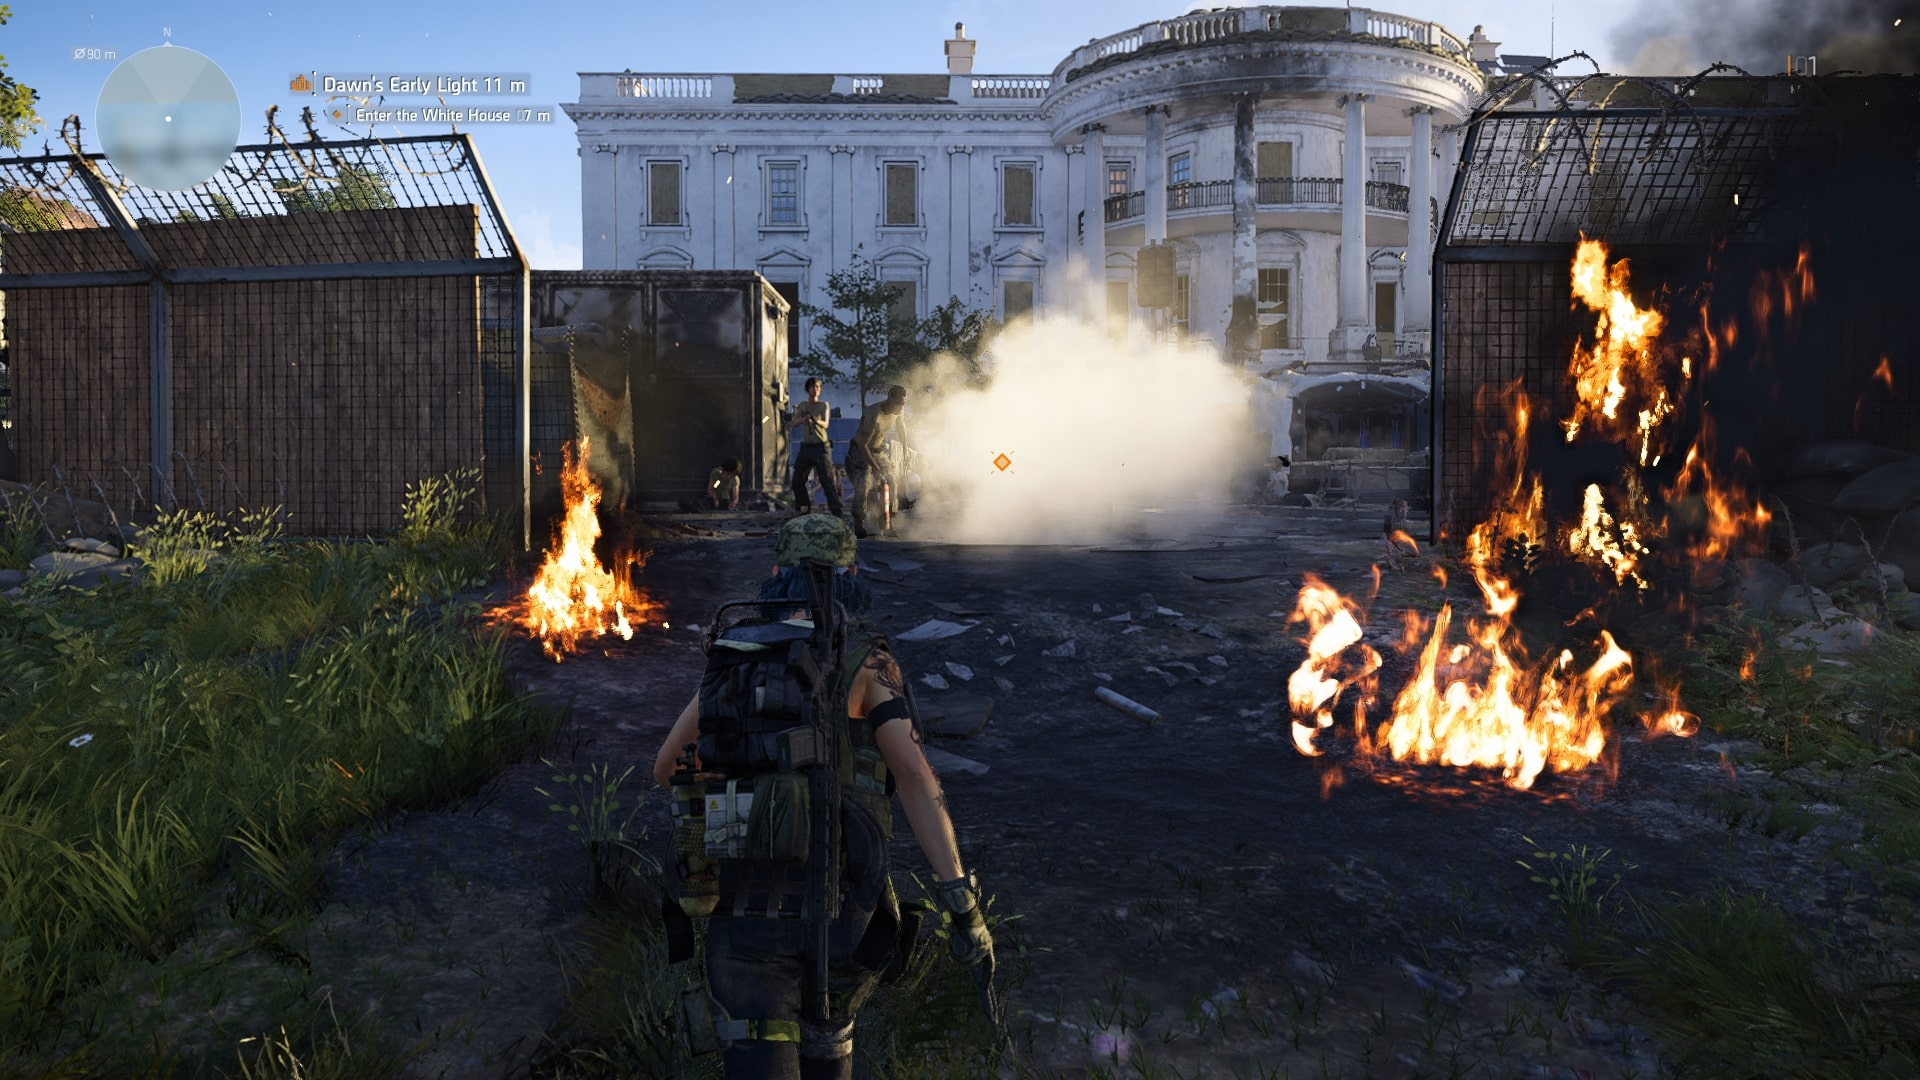 The Division 2 Servers Down - Delta 03, Division 2